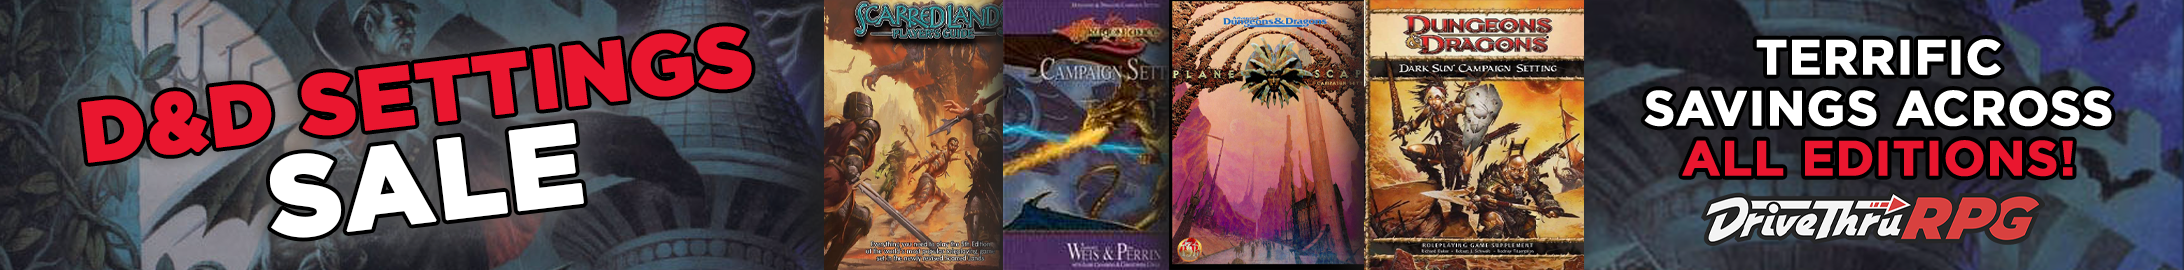 Seeking a new D&D setting for the next campaign? We have options across all editions!